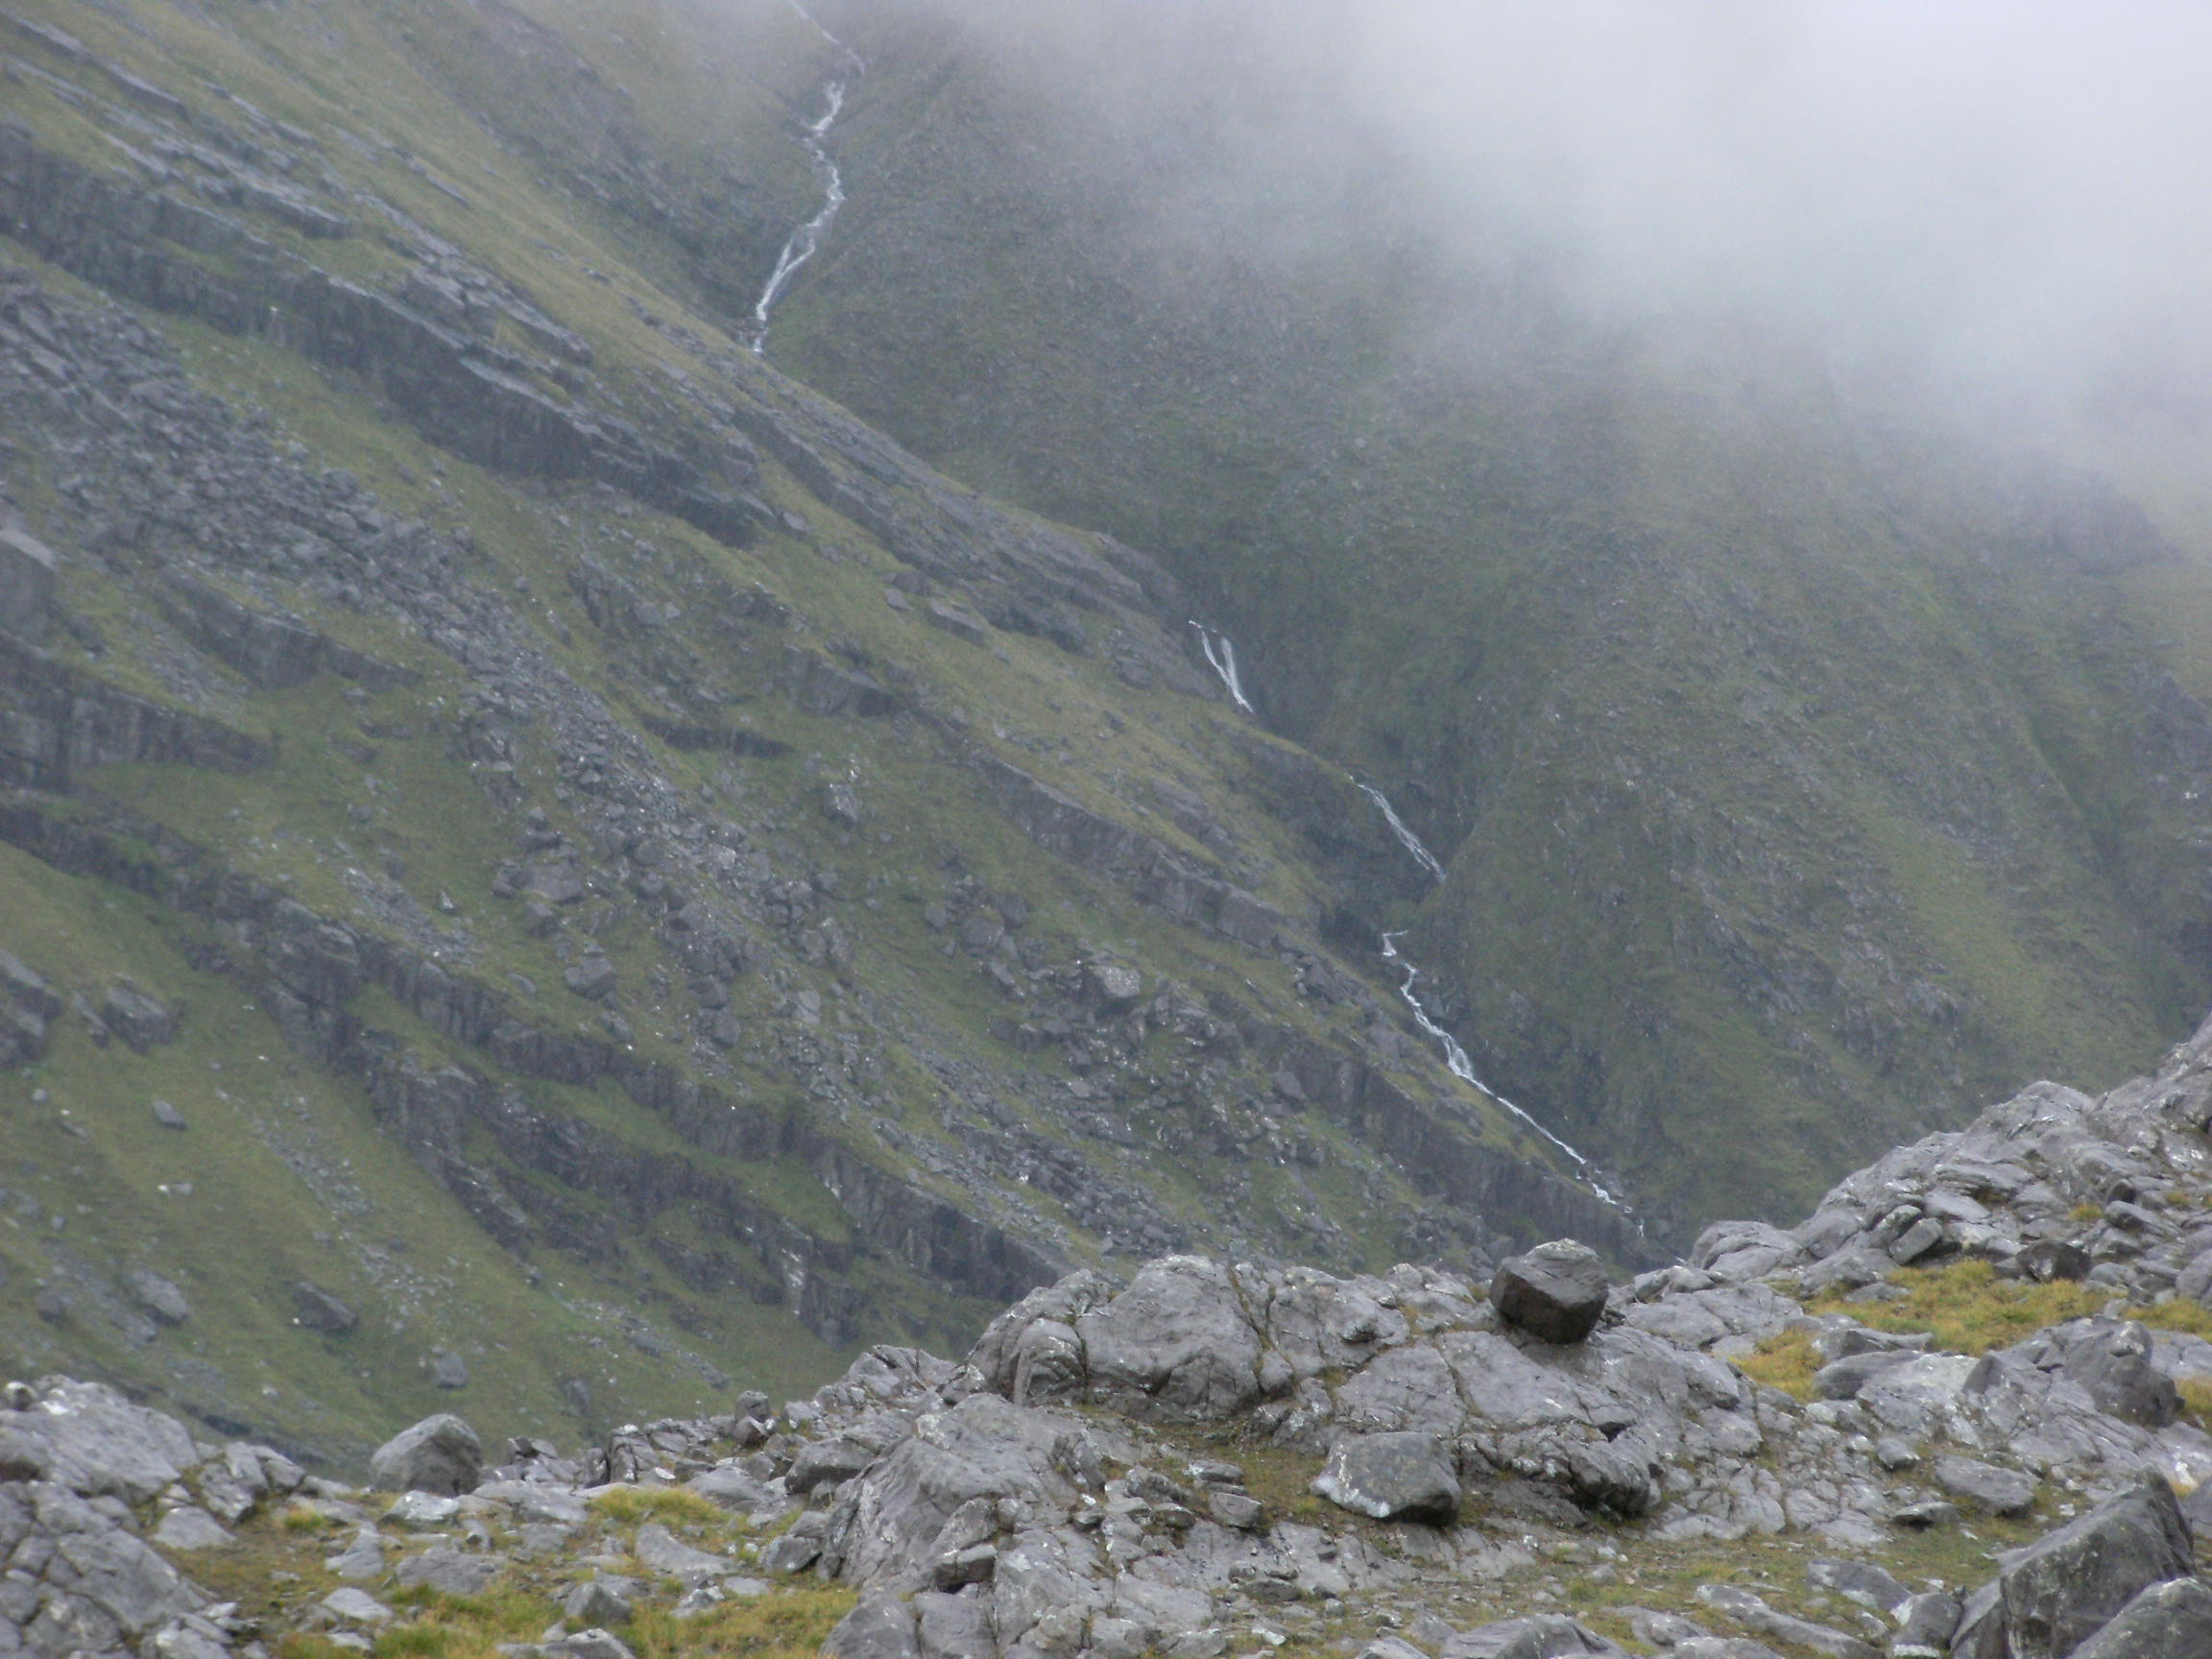 Looking down from the top of Mweelrea, July 2009.